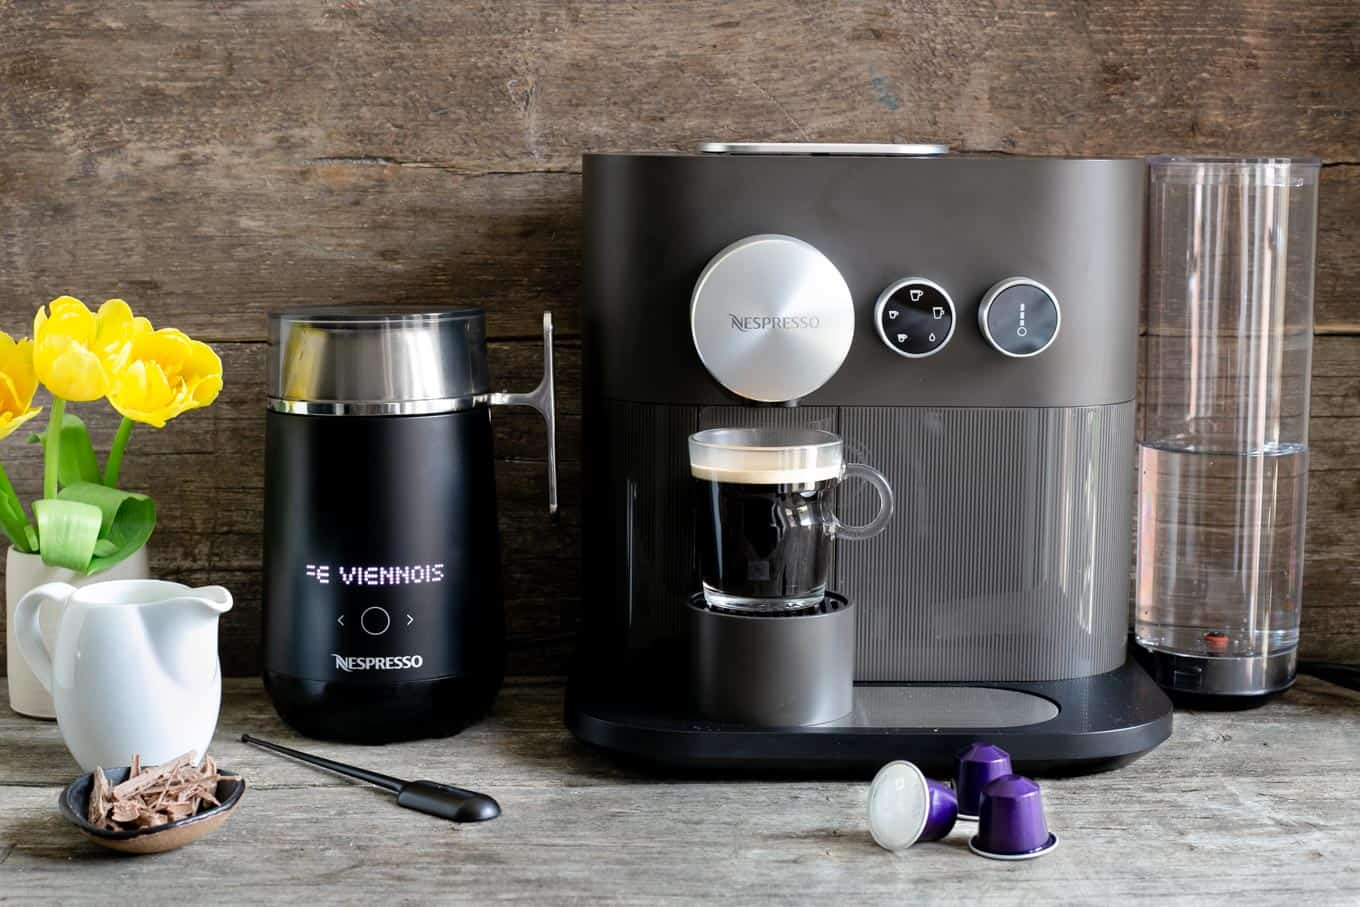 Nespresso Expert and Nespresso Barista recipe maker #coffeerecipe #coffee | via @annabanana.co